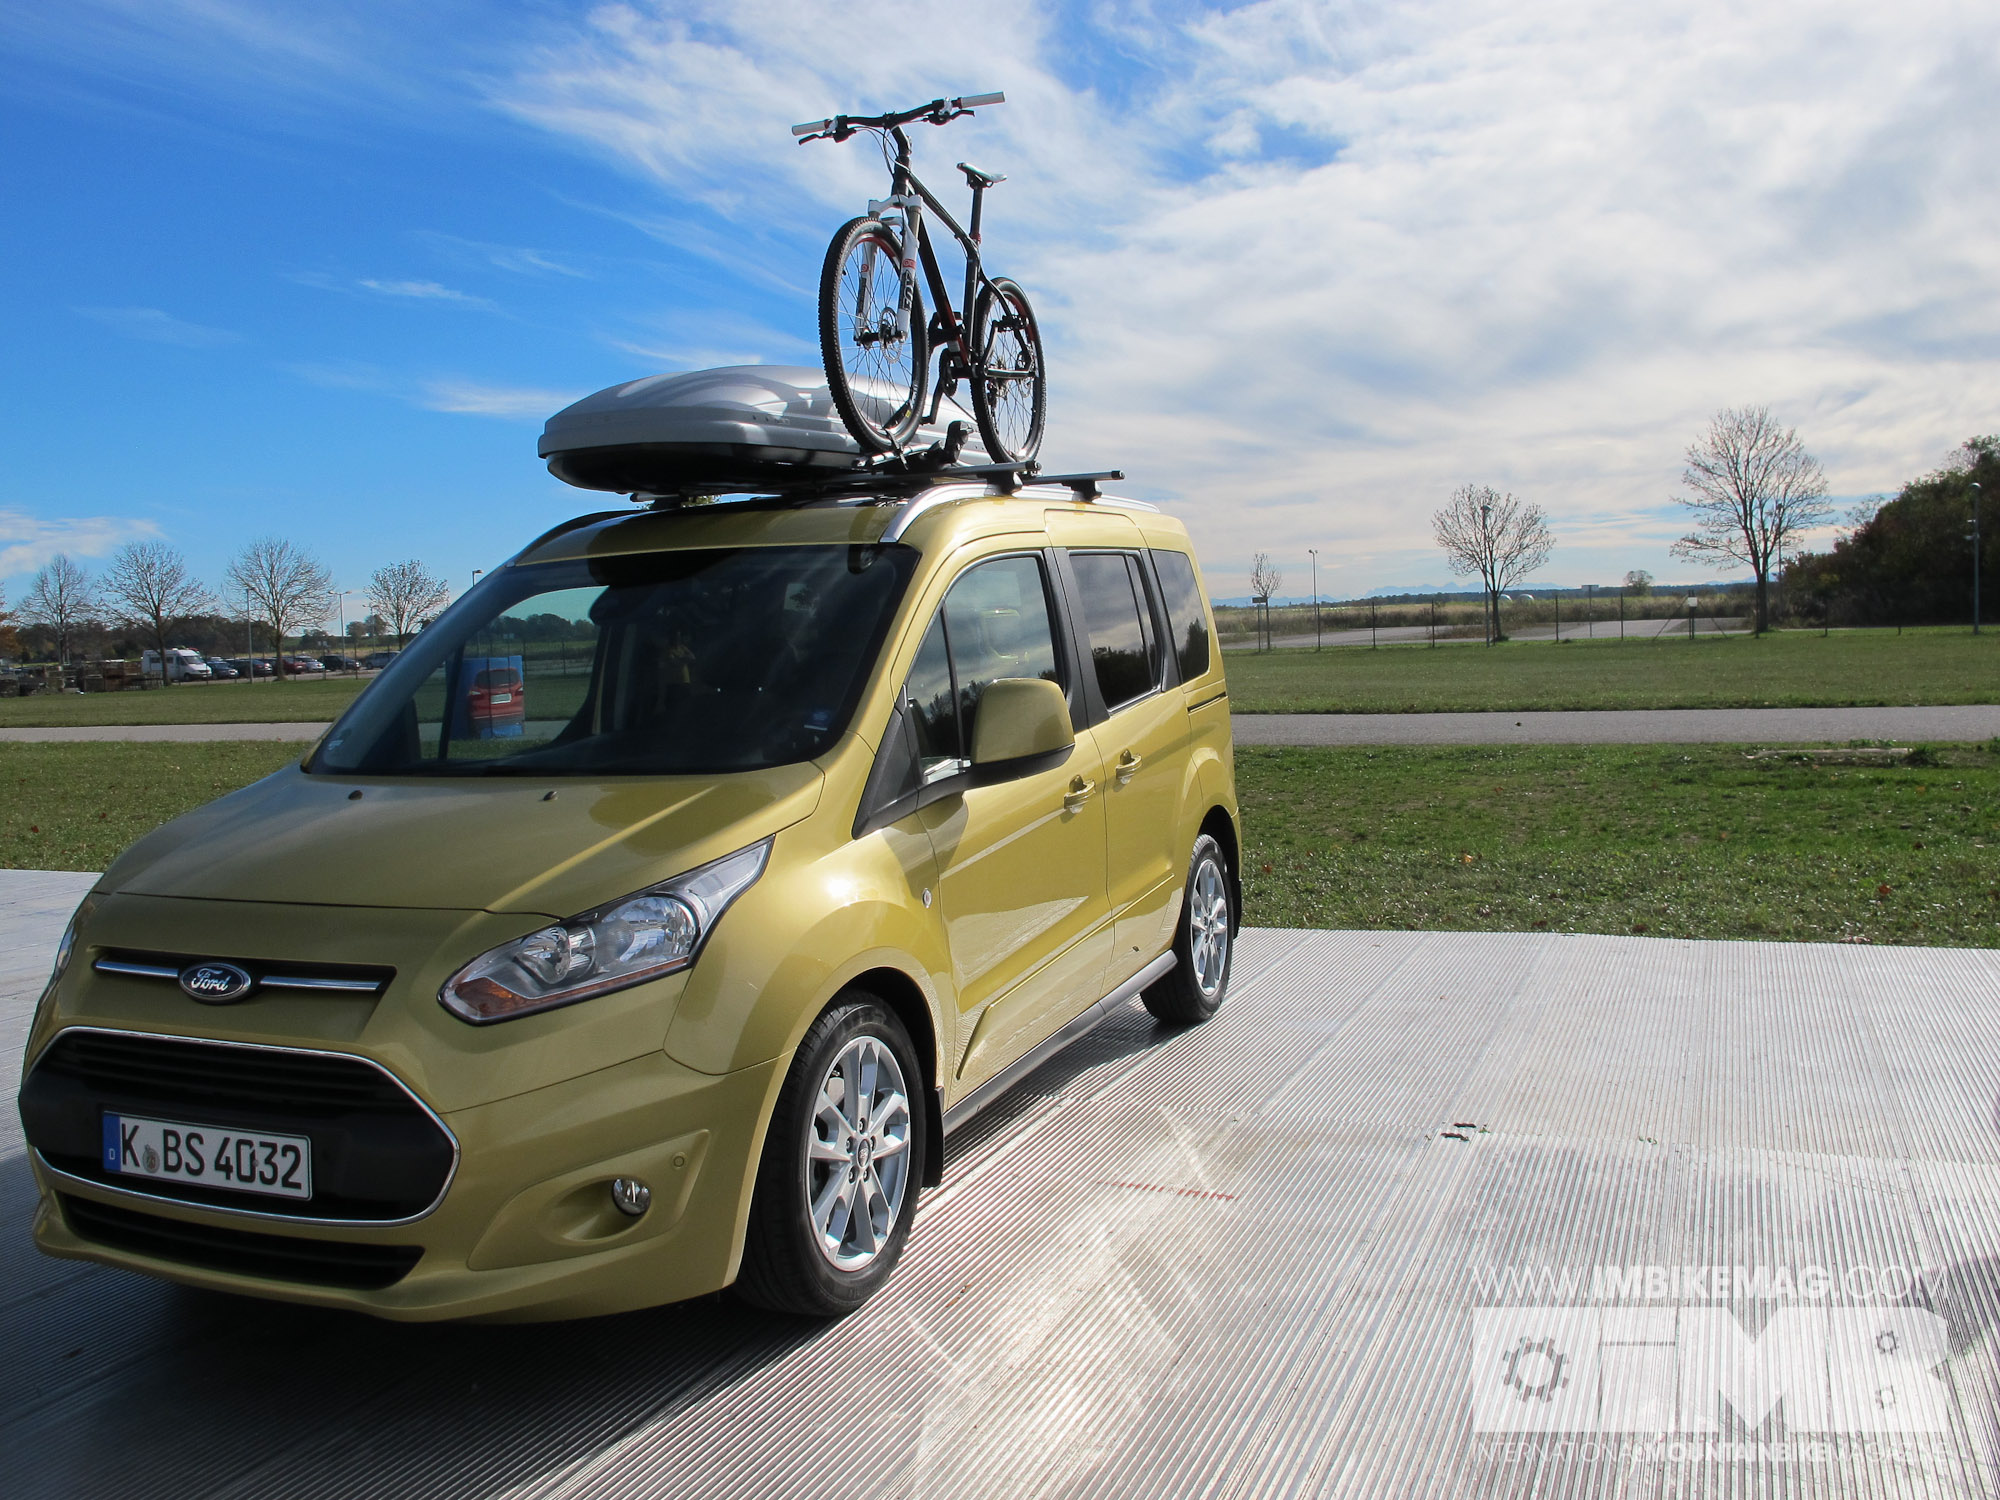 ford tourneo connect new contender for bike adventure vehicle imb free mountain bike. Black Bedroom Furniture Sets. Home Design Ideas